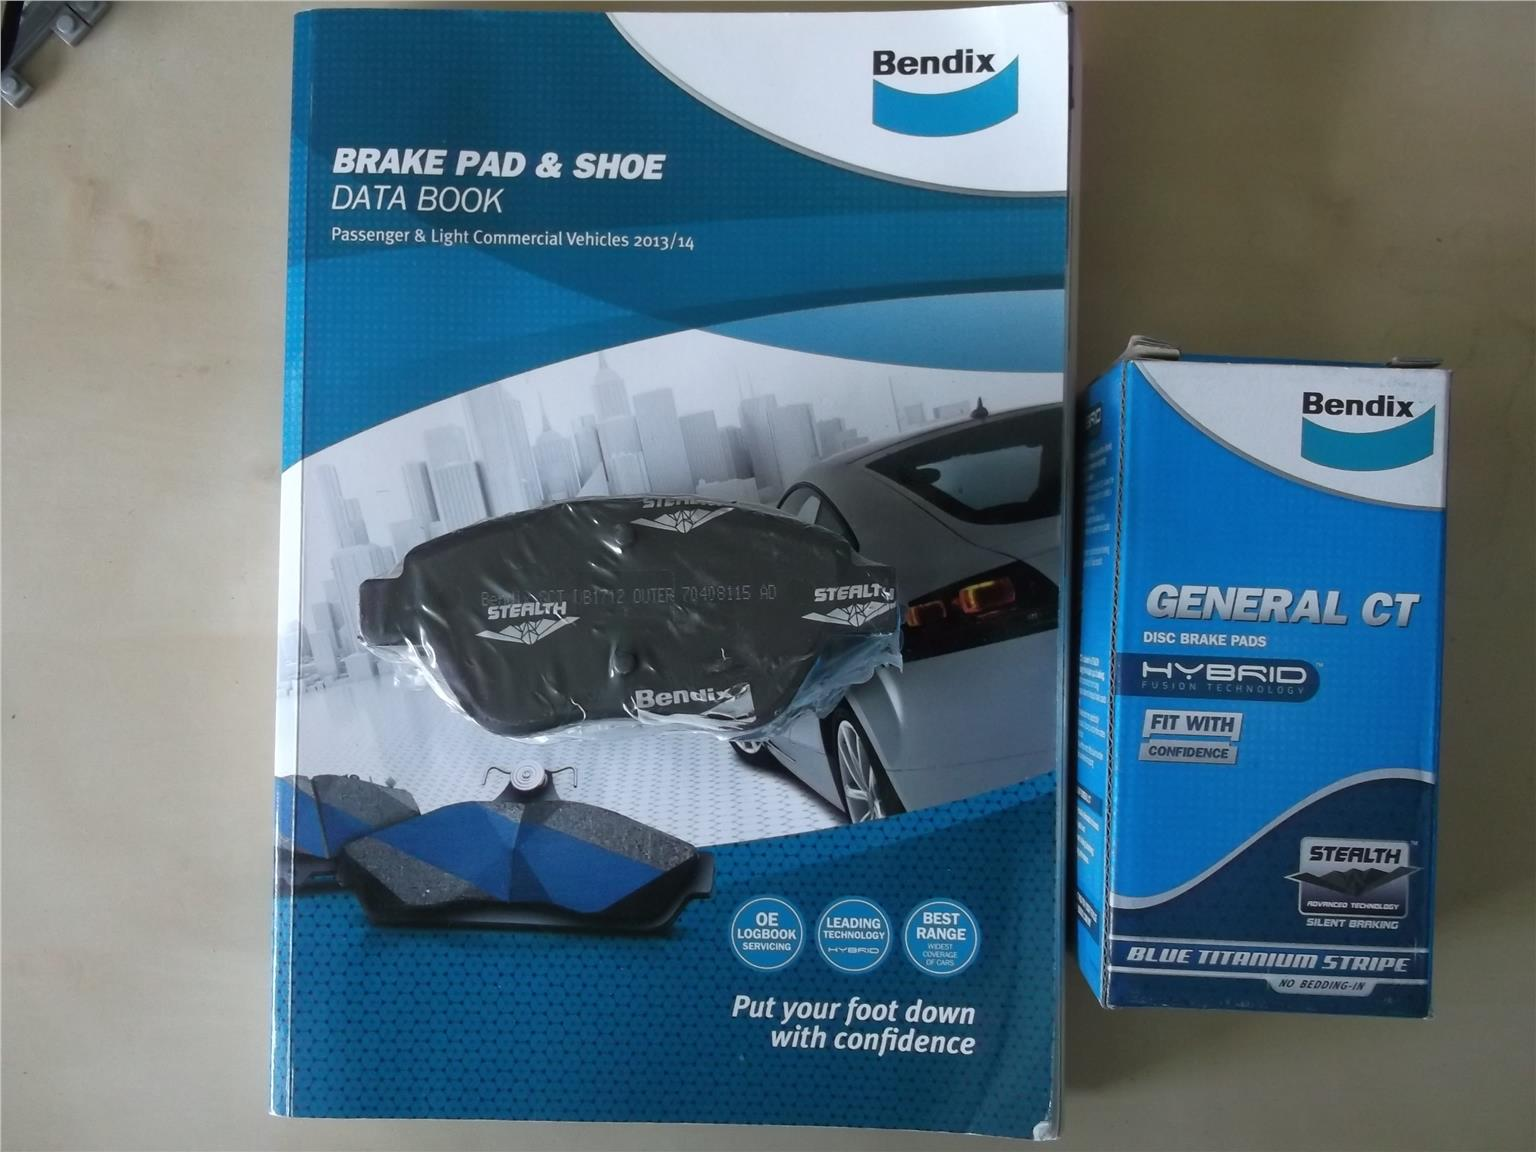 BENDIX GENERAL CT FRONT PAD for GEN 2, PERSONA,SATRIA NEO